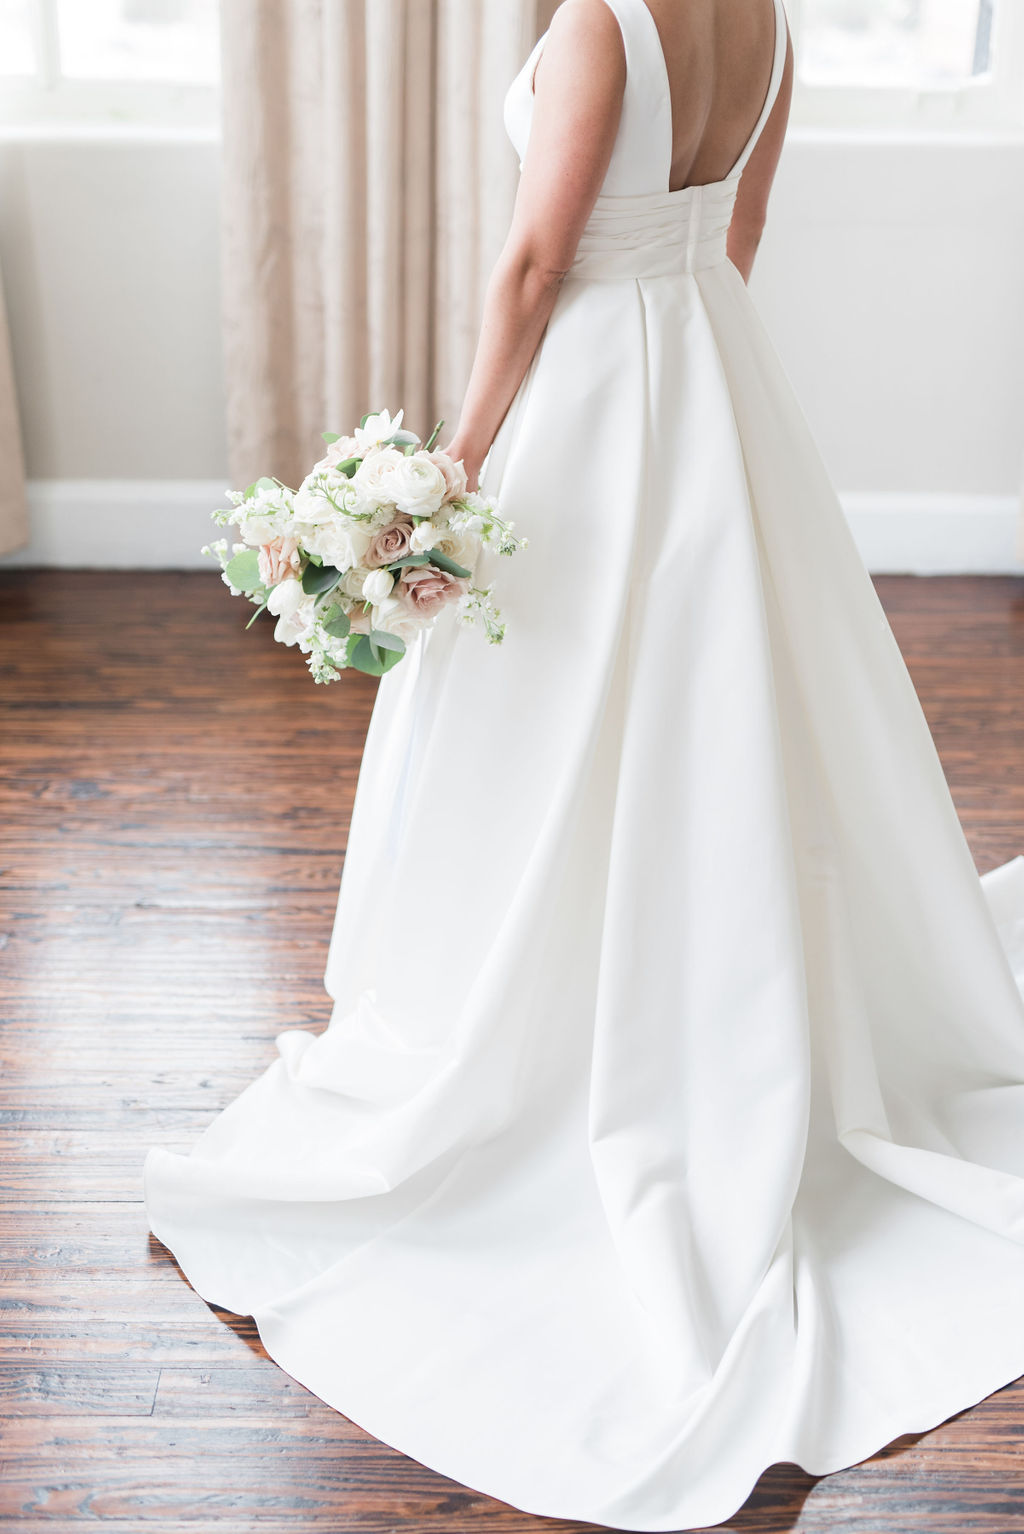 David's Bridal wedding dress: Dusty Blue and Blush Wedding at The Room on Main featured on Alexa Kay Events!